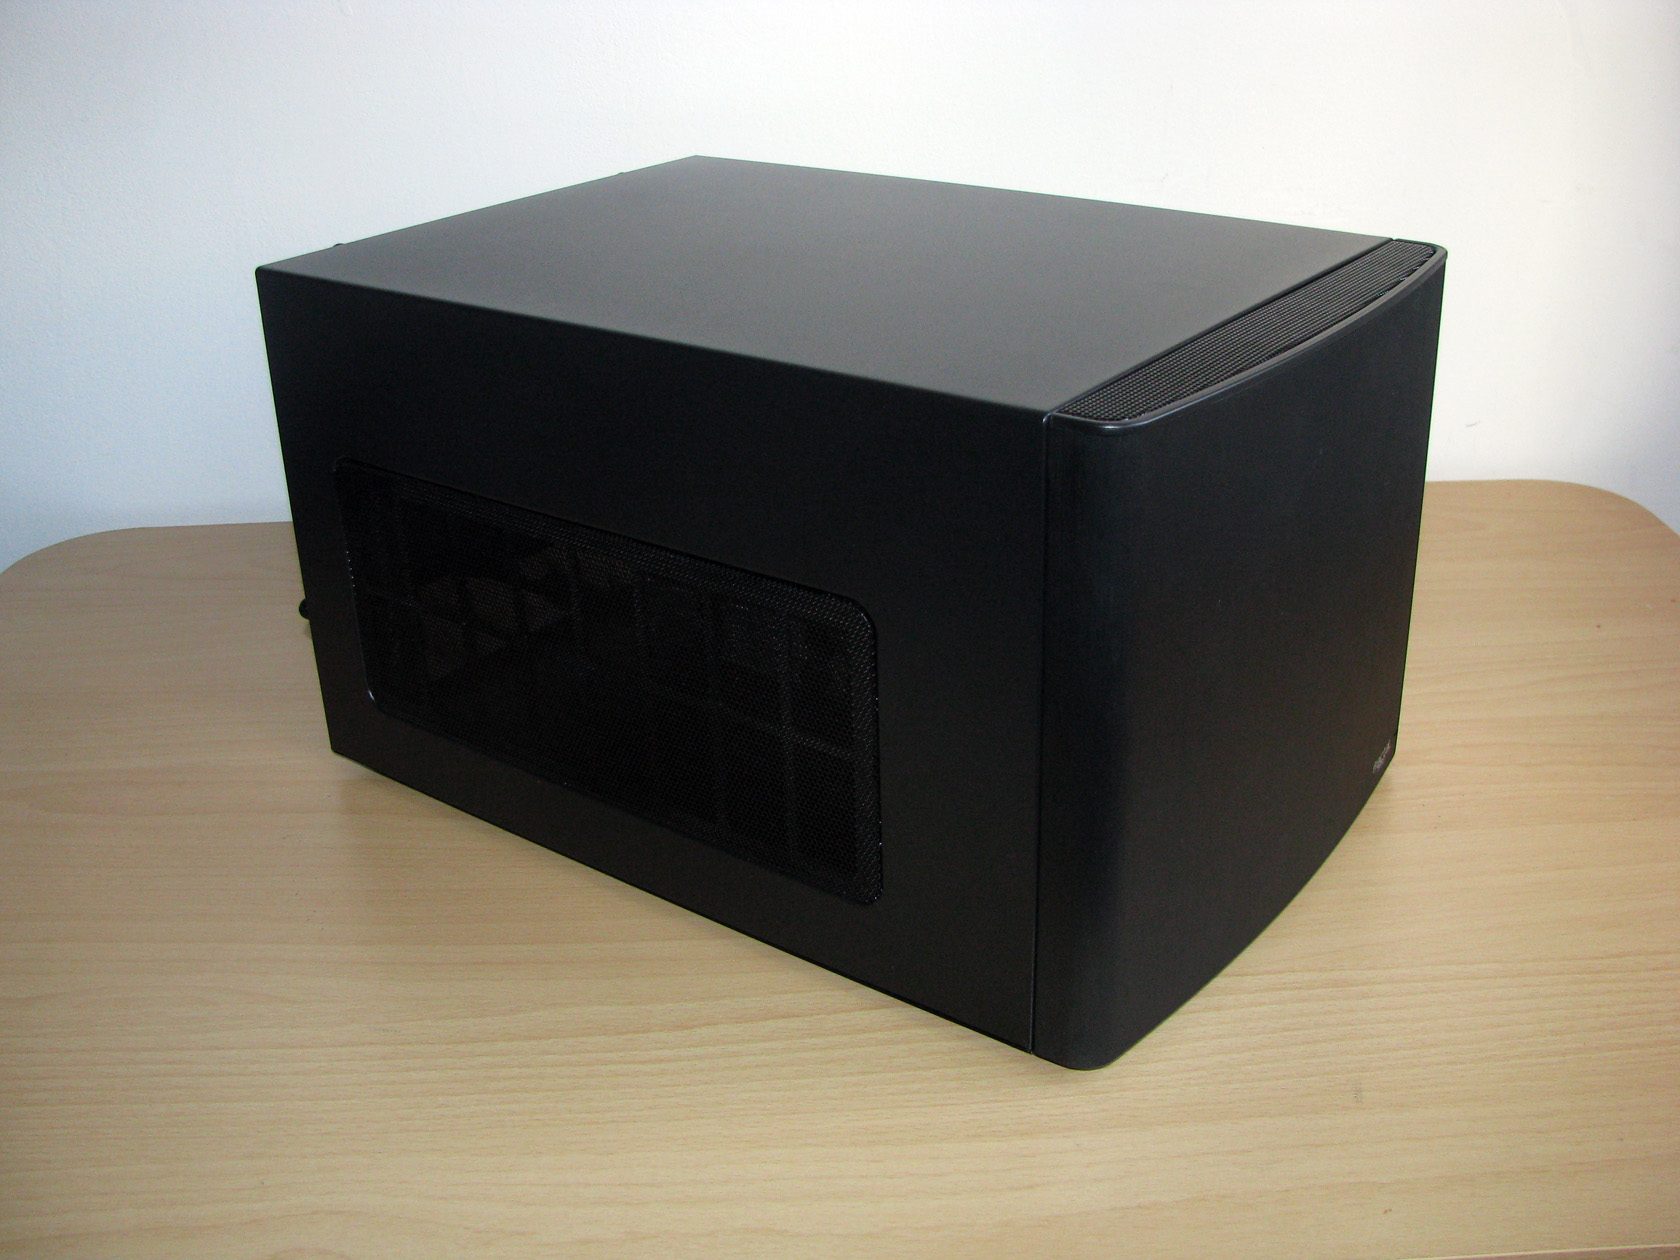 The Case Offers A Pretty Clean And Stylish Design Its Made Of Parts SECC Painted In Black While Front Panel Is Plastic